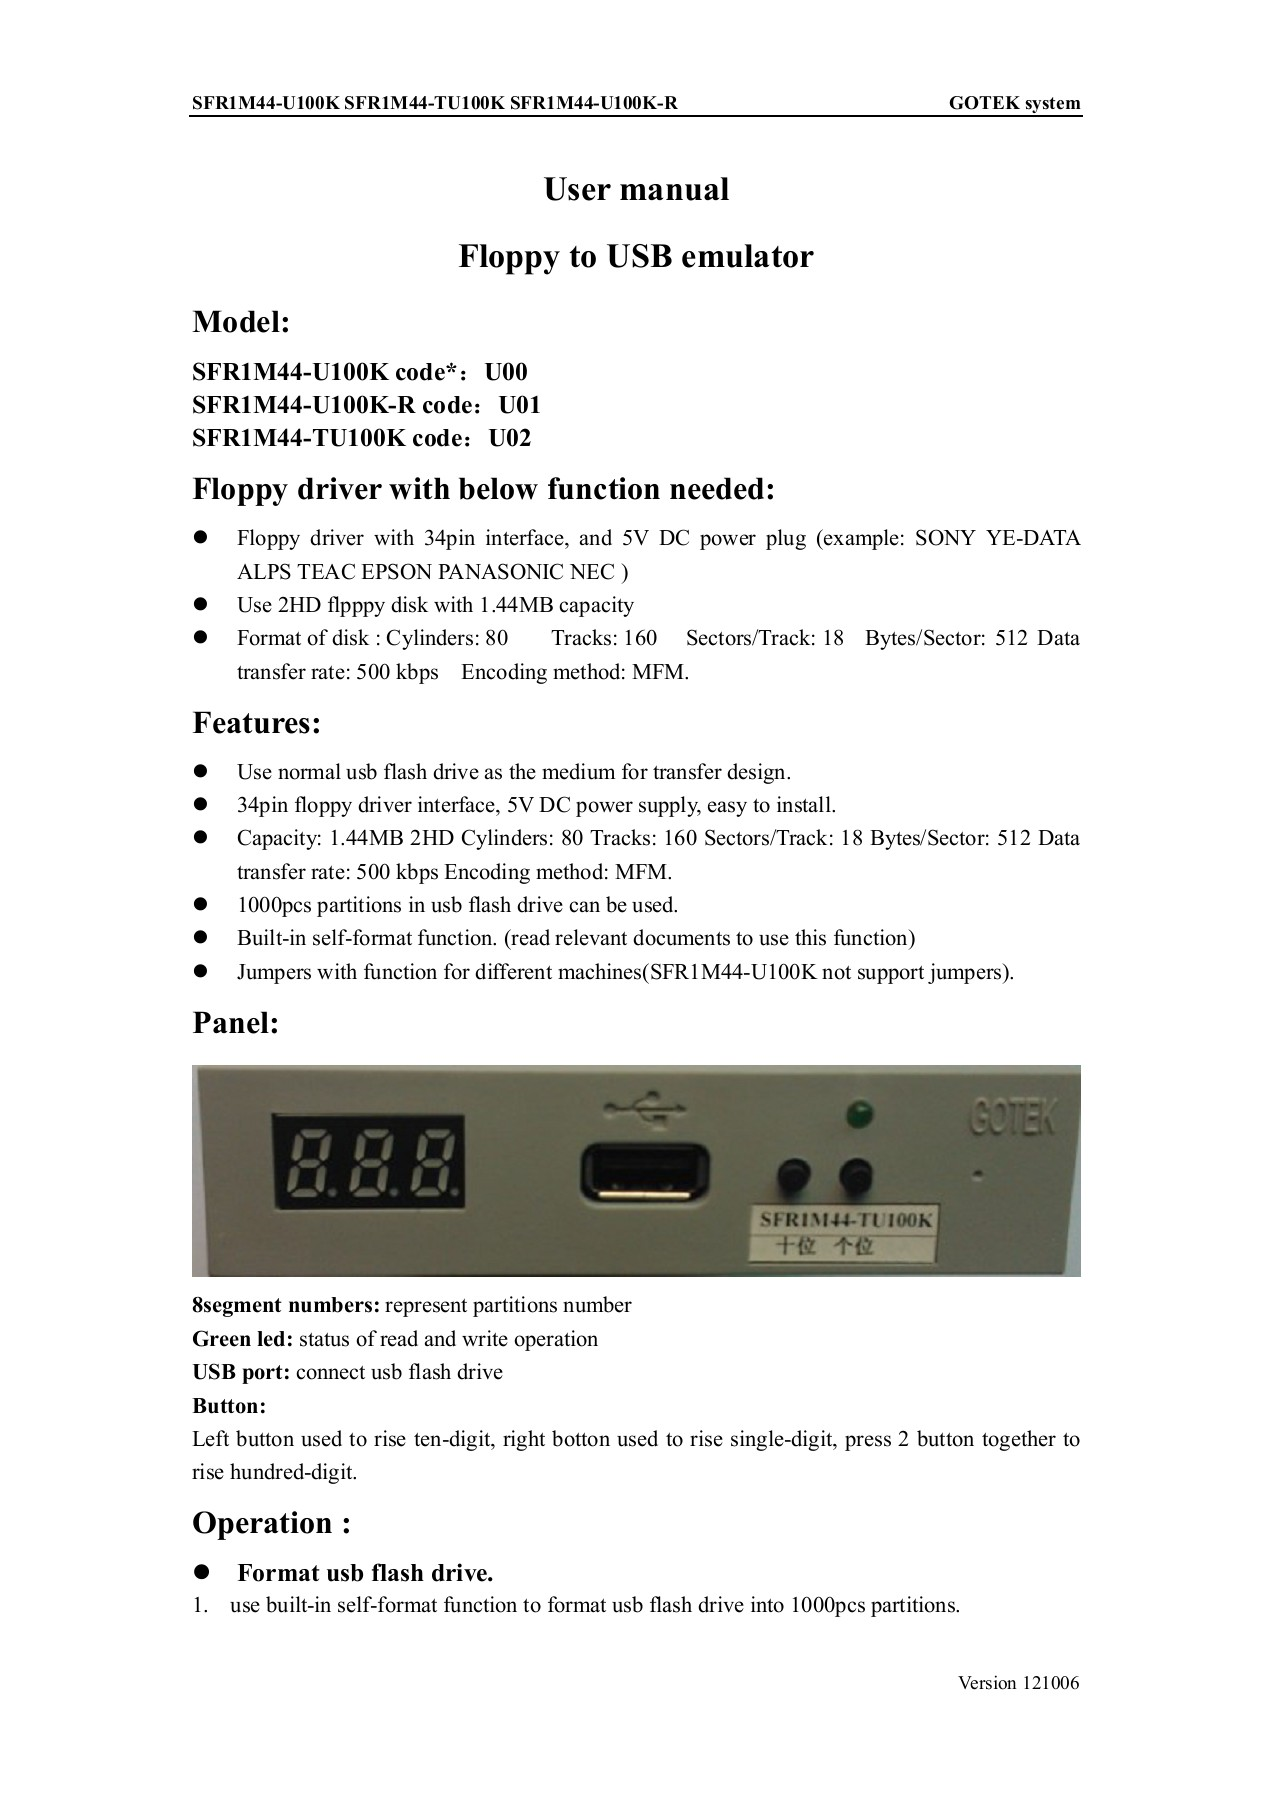 User manual Floppy to USB emulator - Gough's Tech Zone Pages